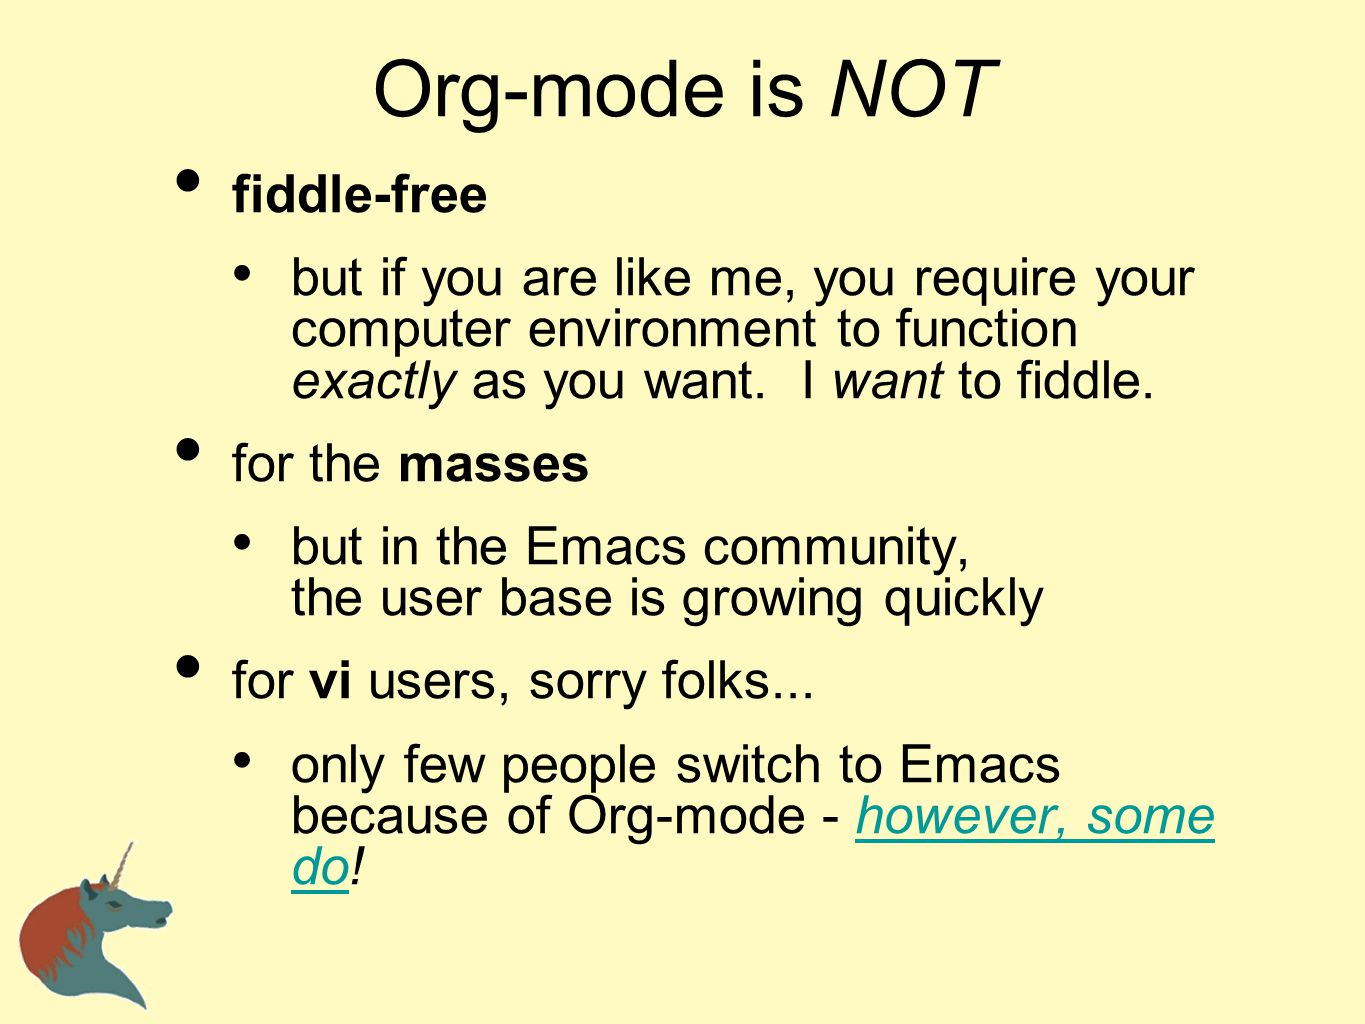 Org-mode is NOT fiddle-free